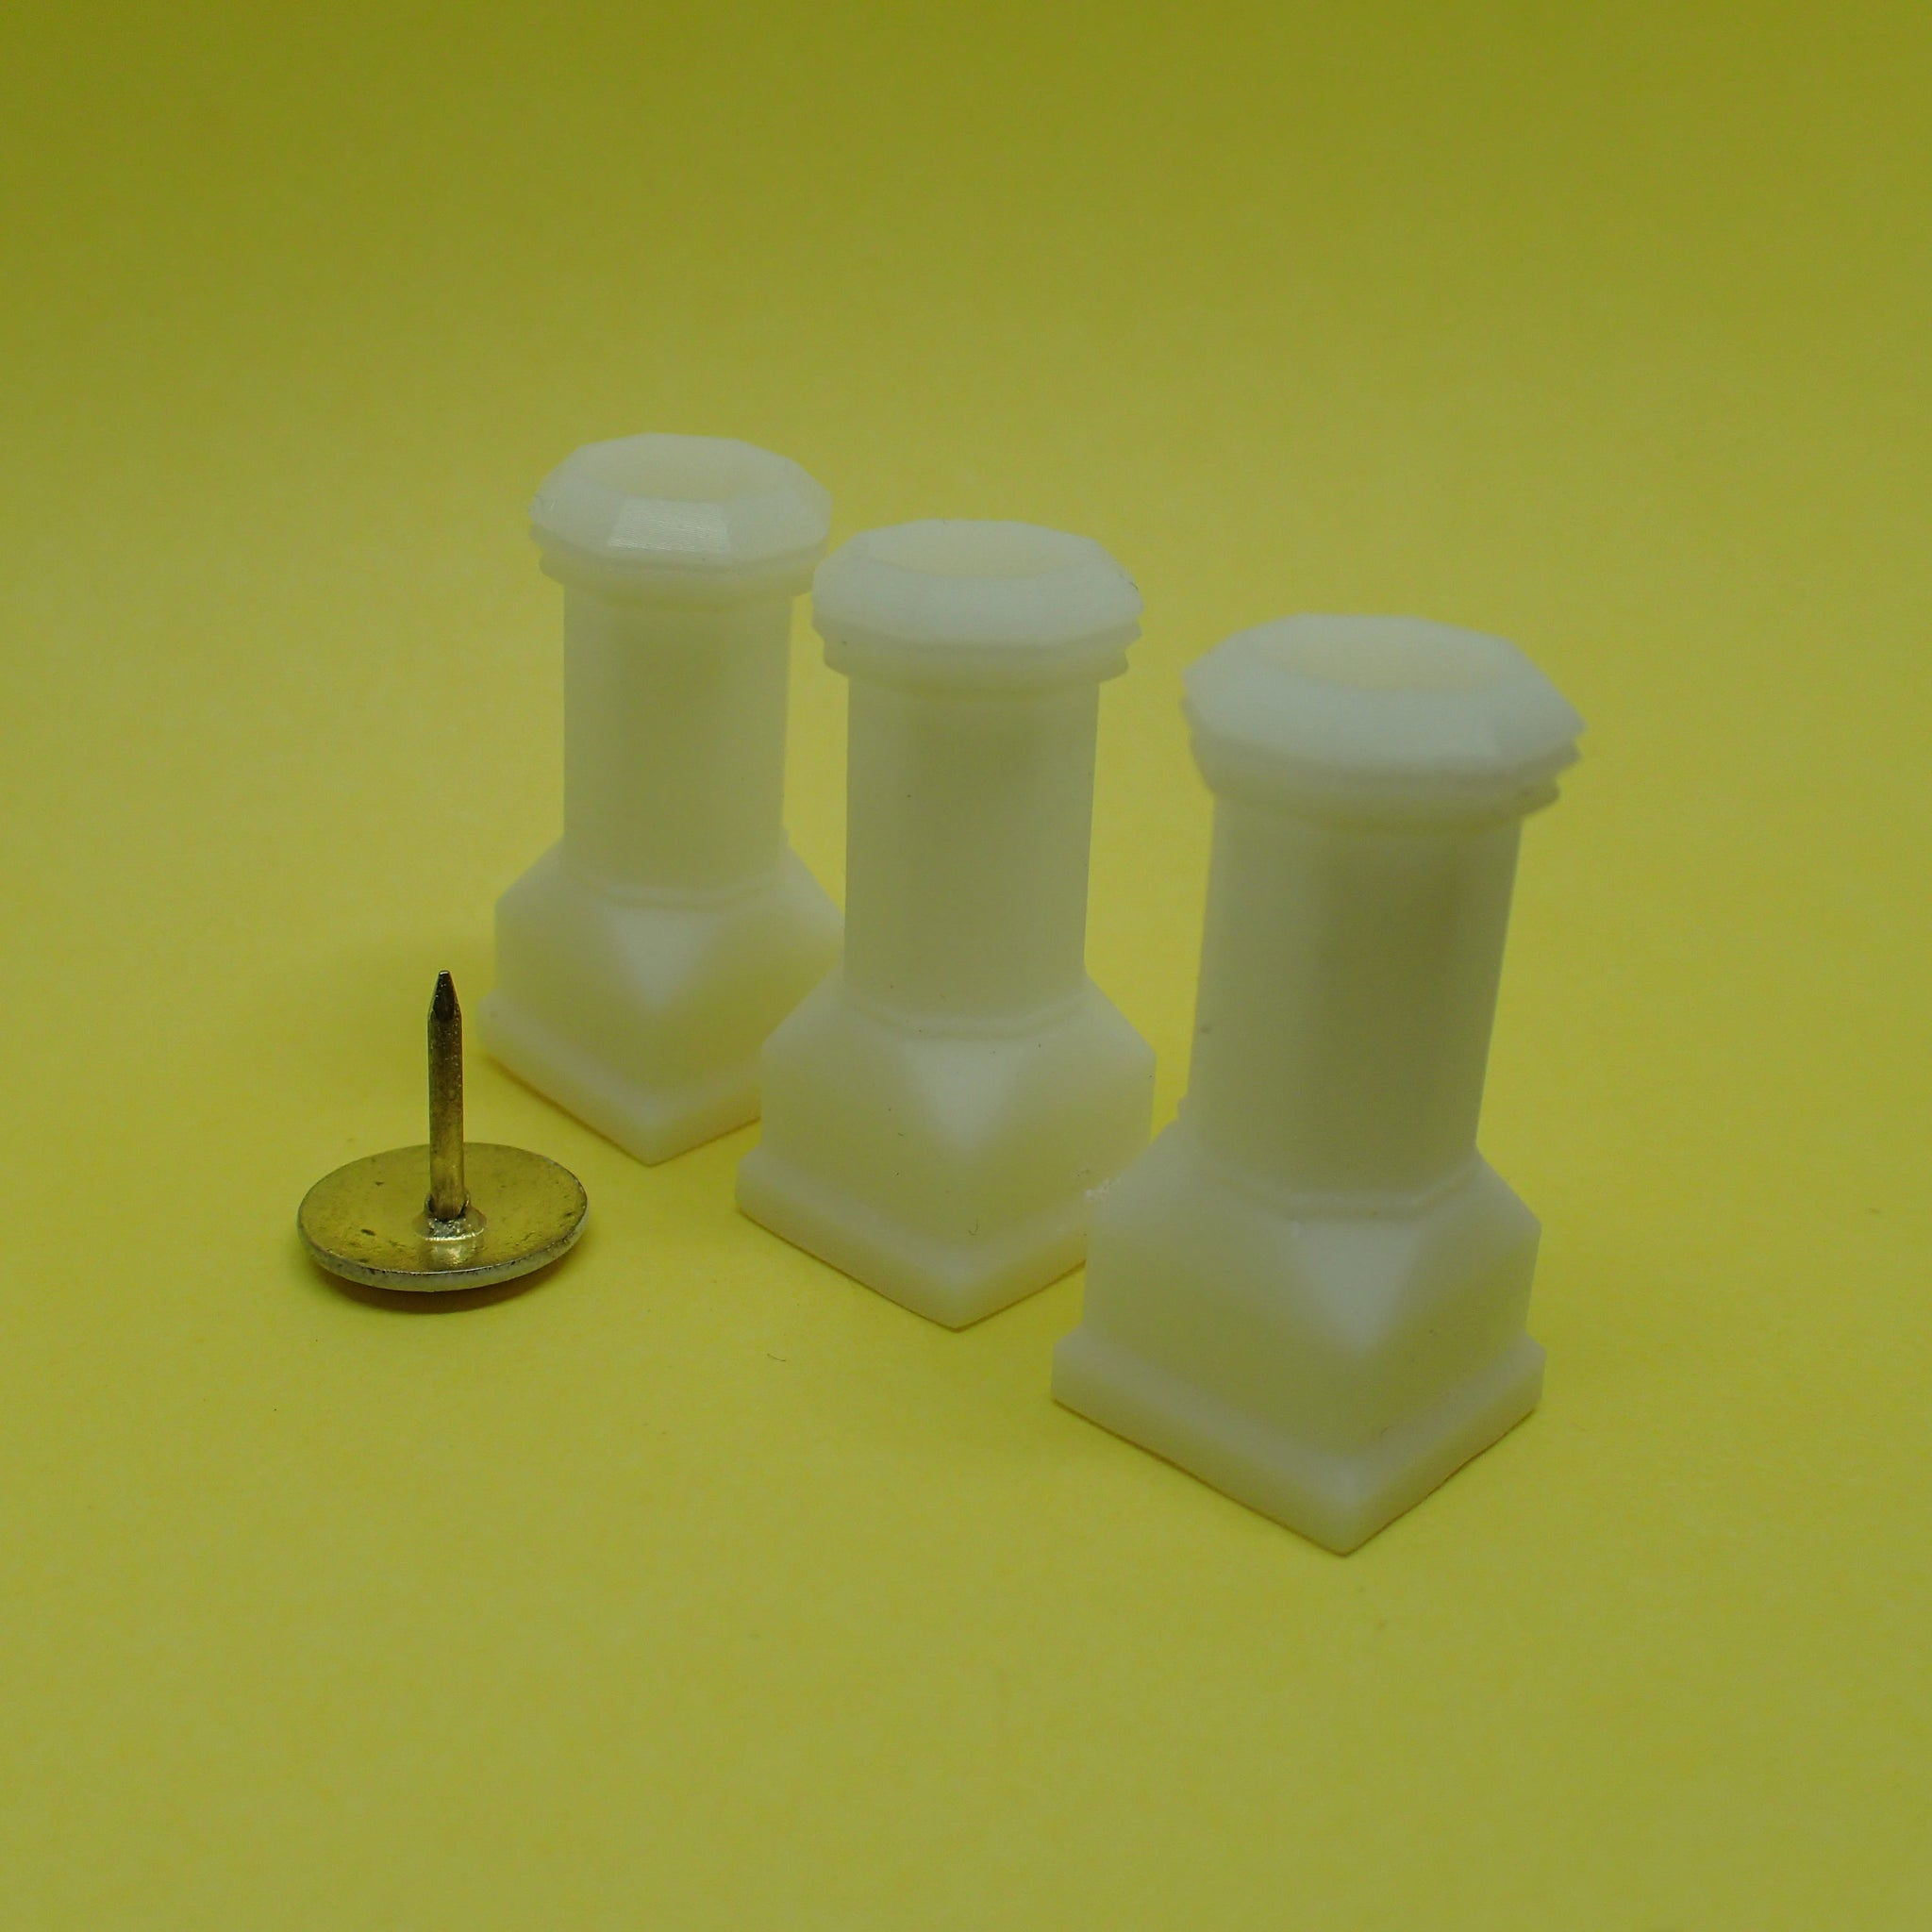 Edwardian style chimney pot set, 1/32nd scale